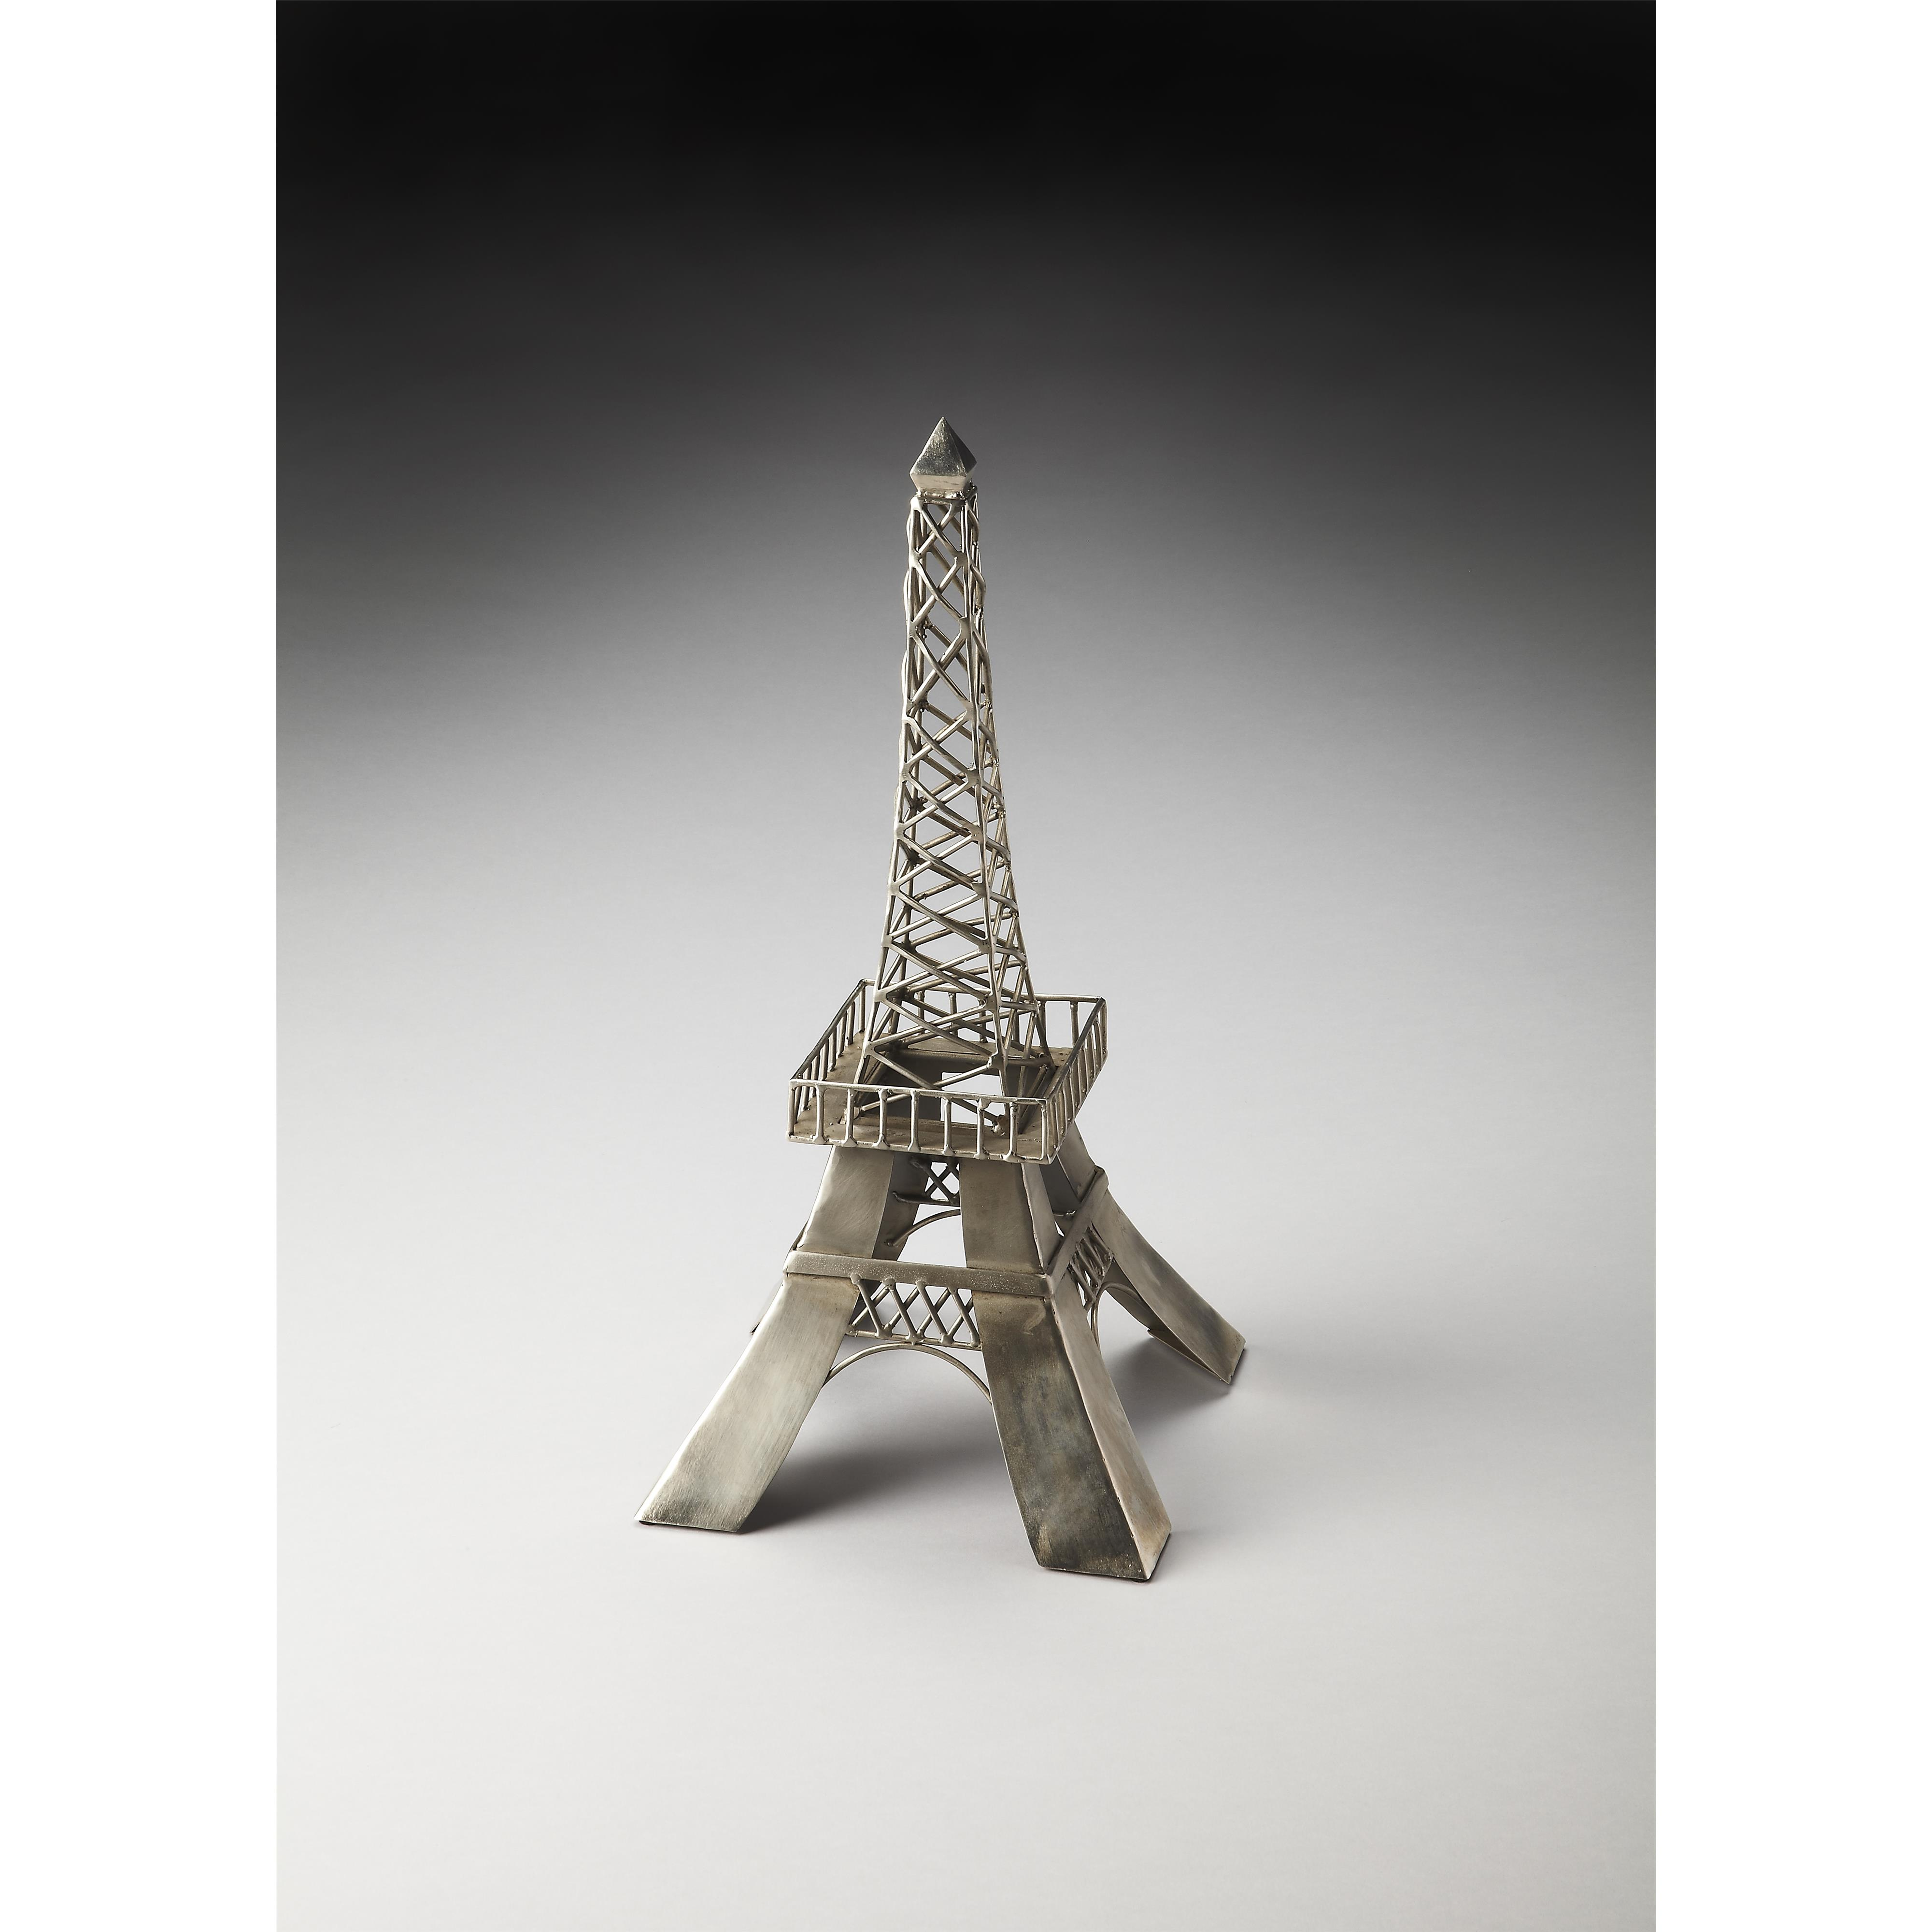 Butler Specialty Company Hors D'oeuvres Eiffel Tower Figurine - Item Number: 5132016